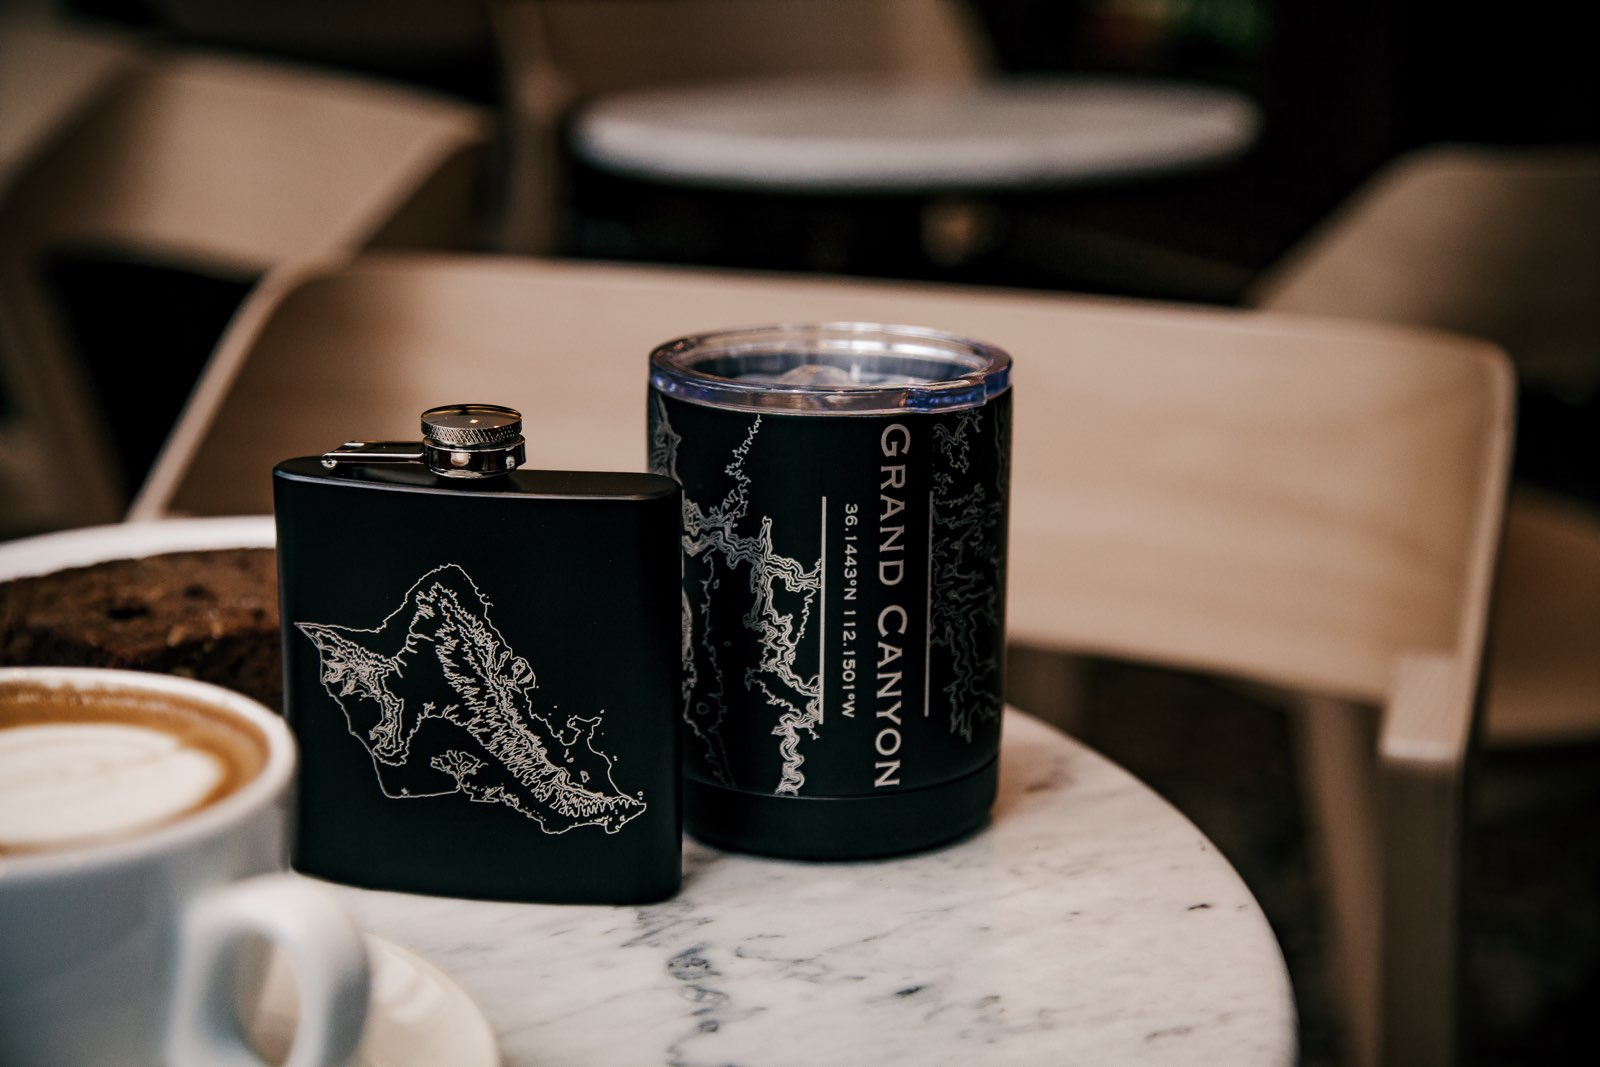 10 oz Cup Midnight Edition and 6 oz Hip Flask